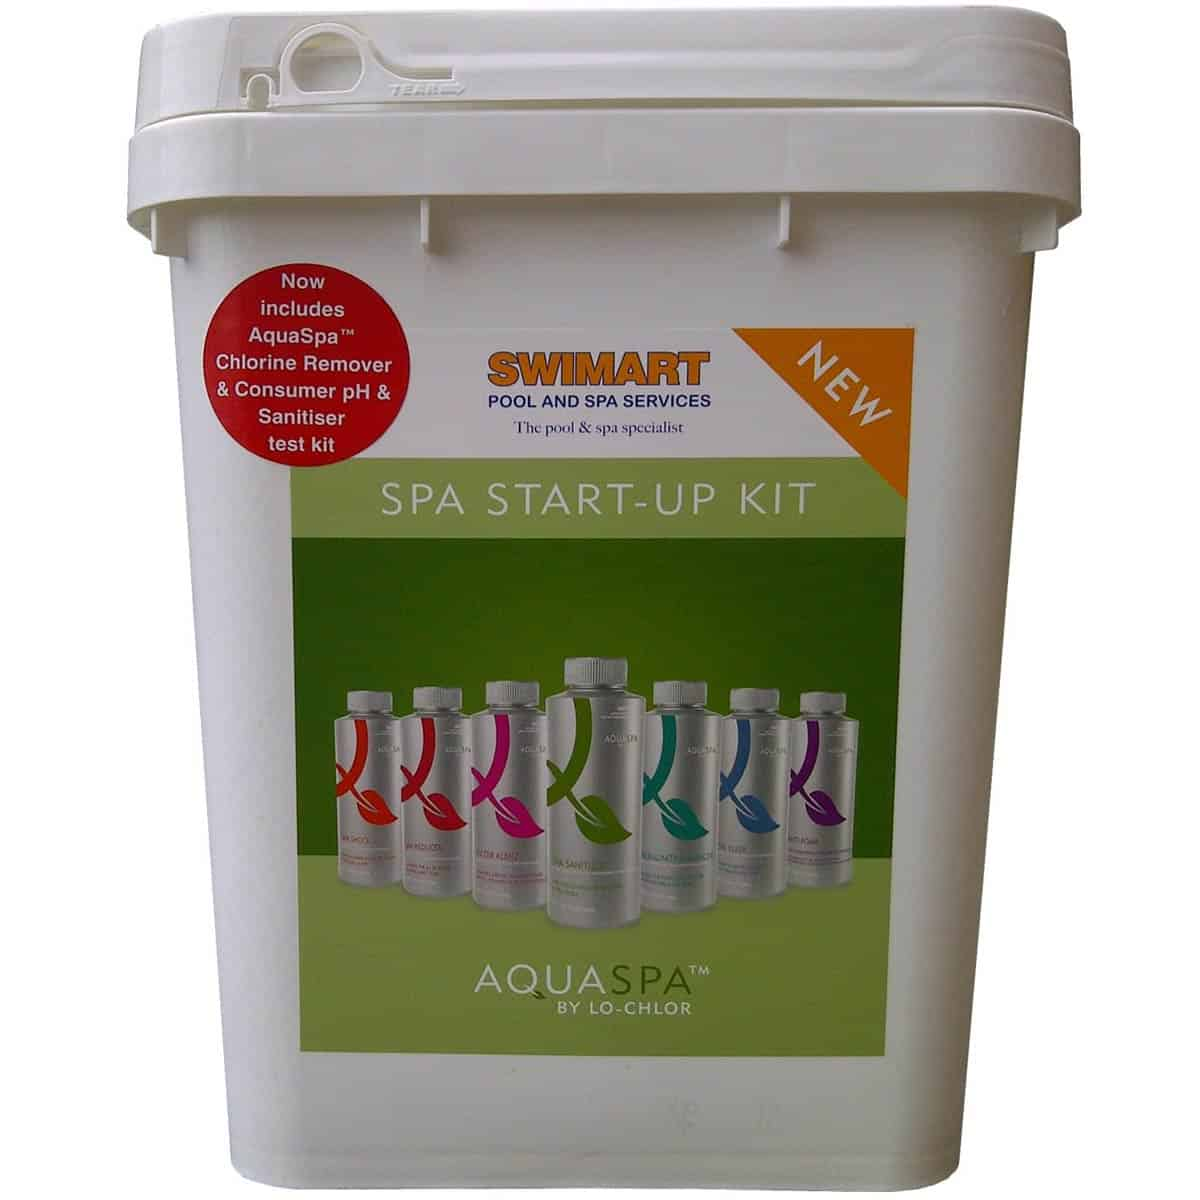 Chlor Pool Test Aquaspa Spa Startup Kit Swimart